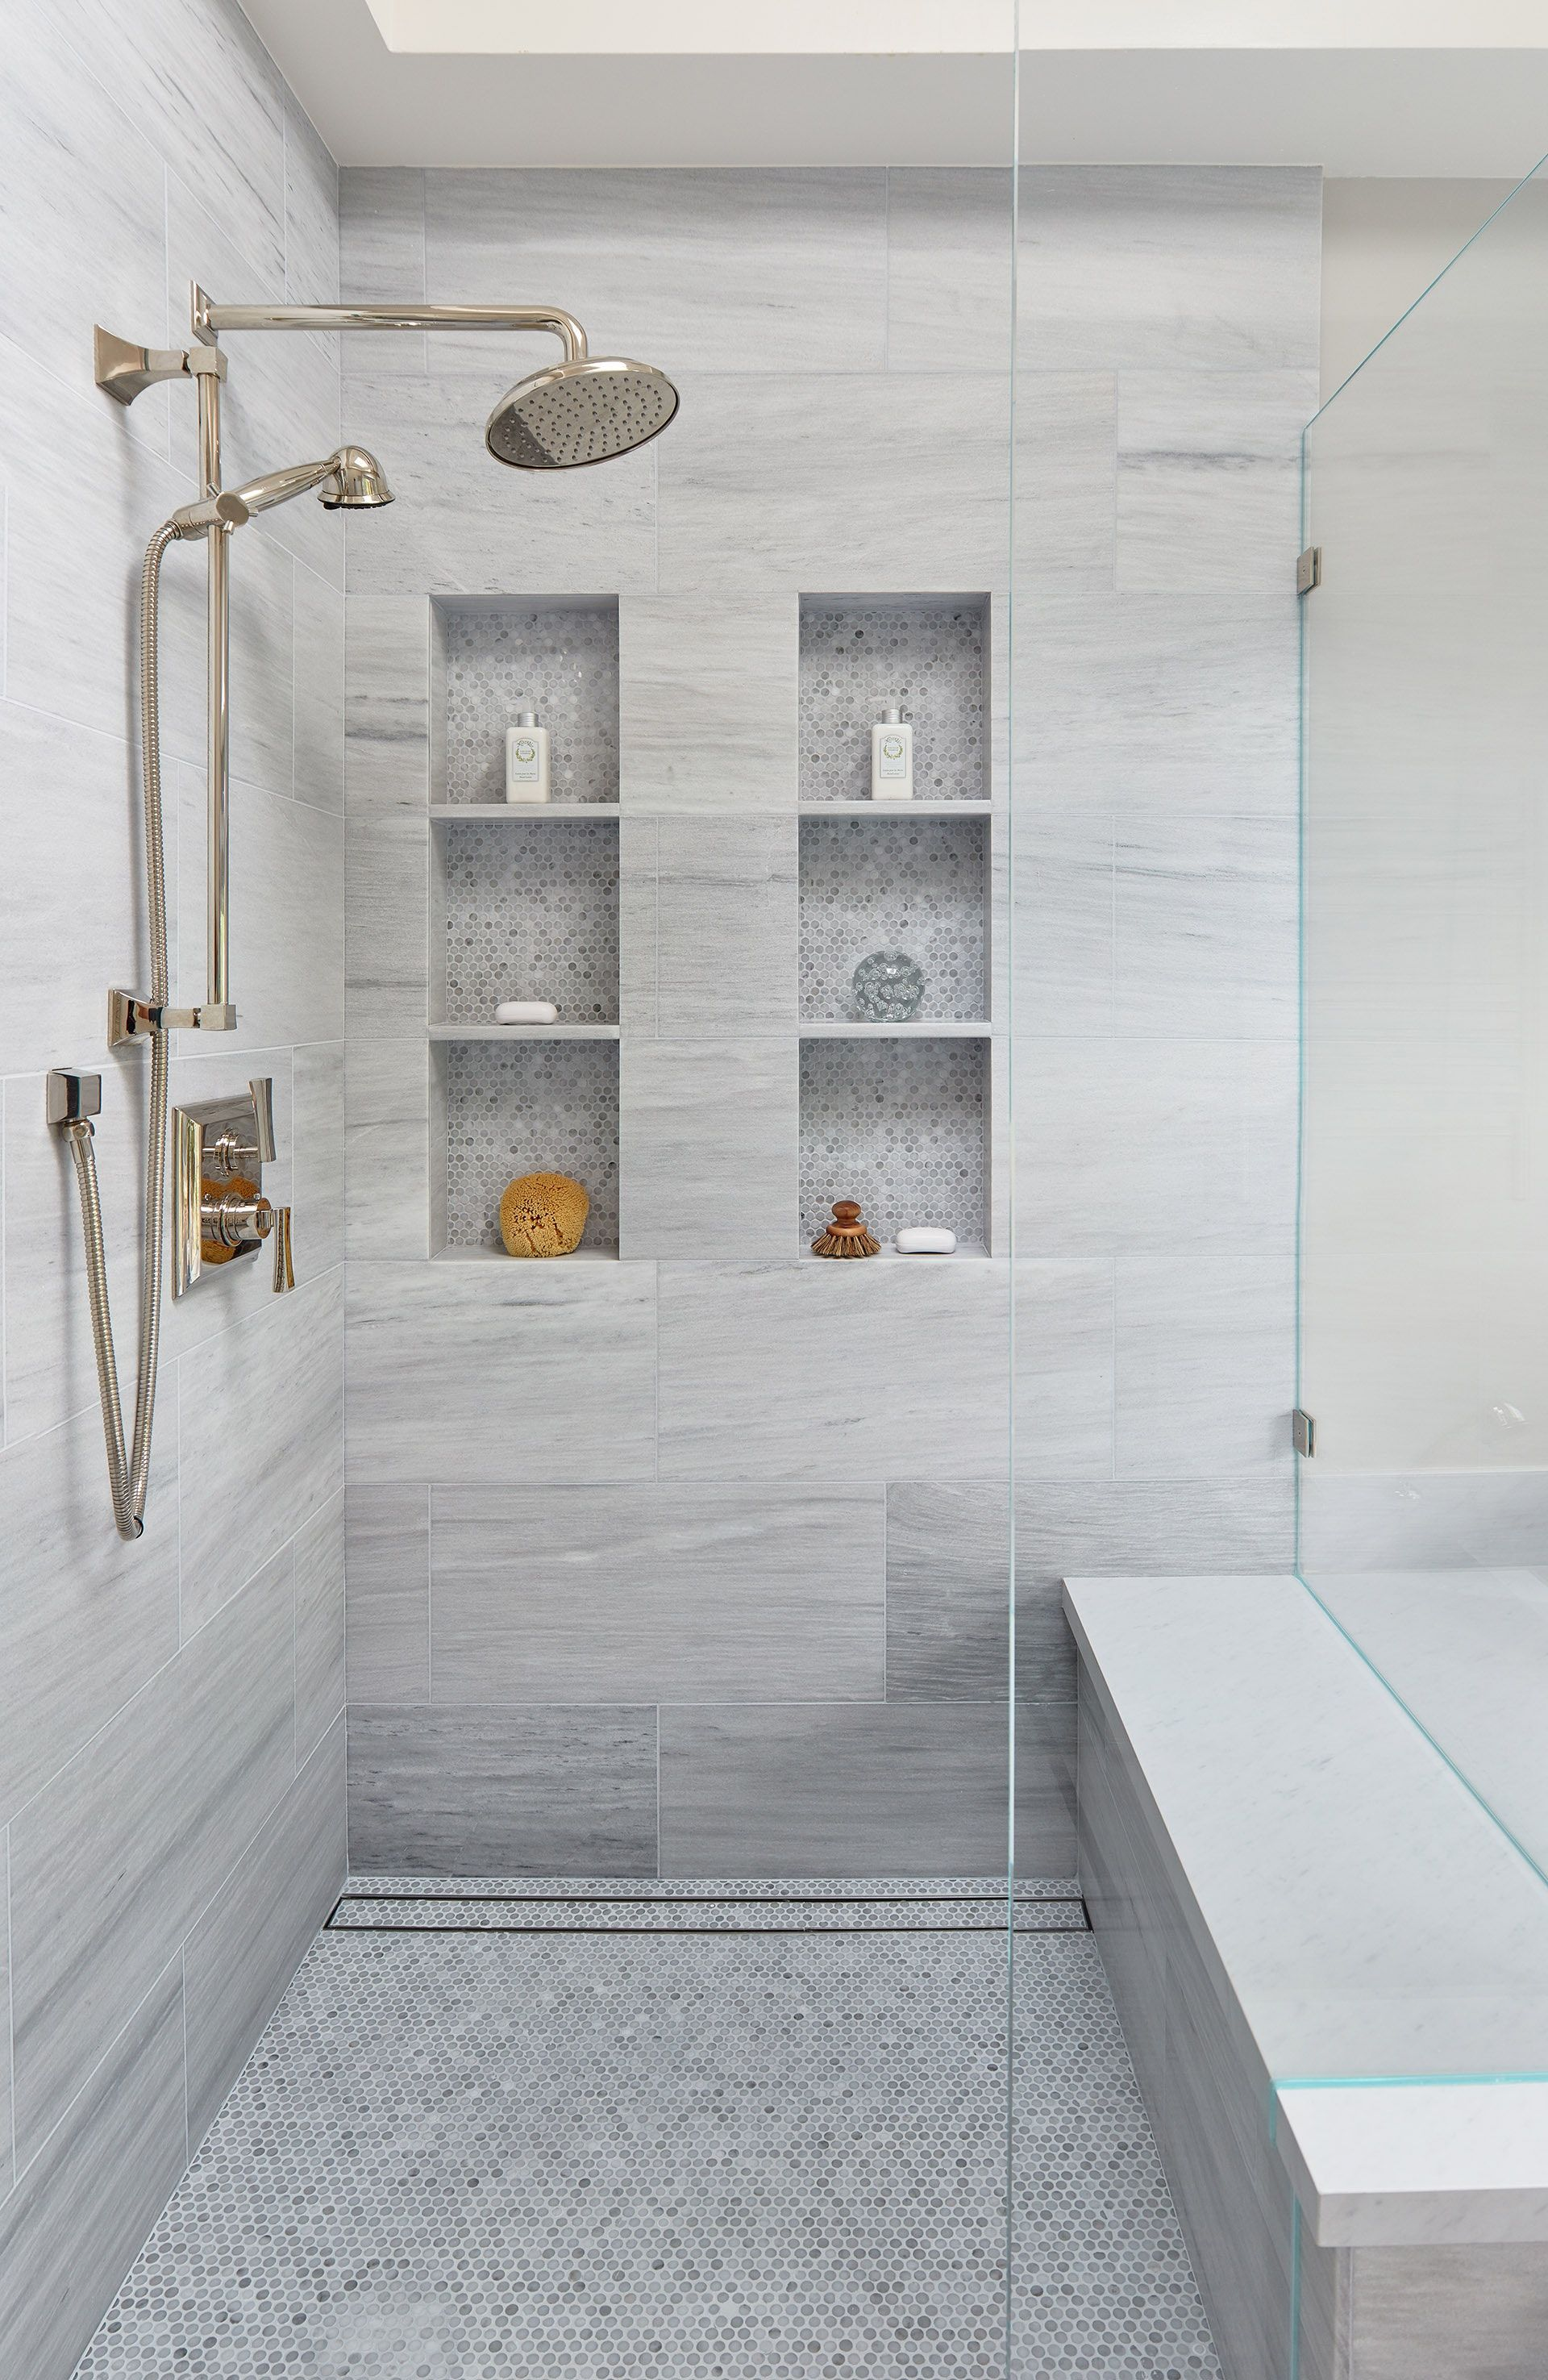 Cloud White Master Bathroom With Frameless Glass And Trench Drain Shower White Master Bathroom Modern Master Bathroom Bathroom Interior Design